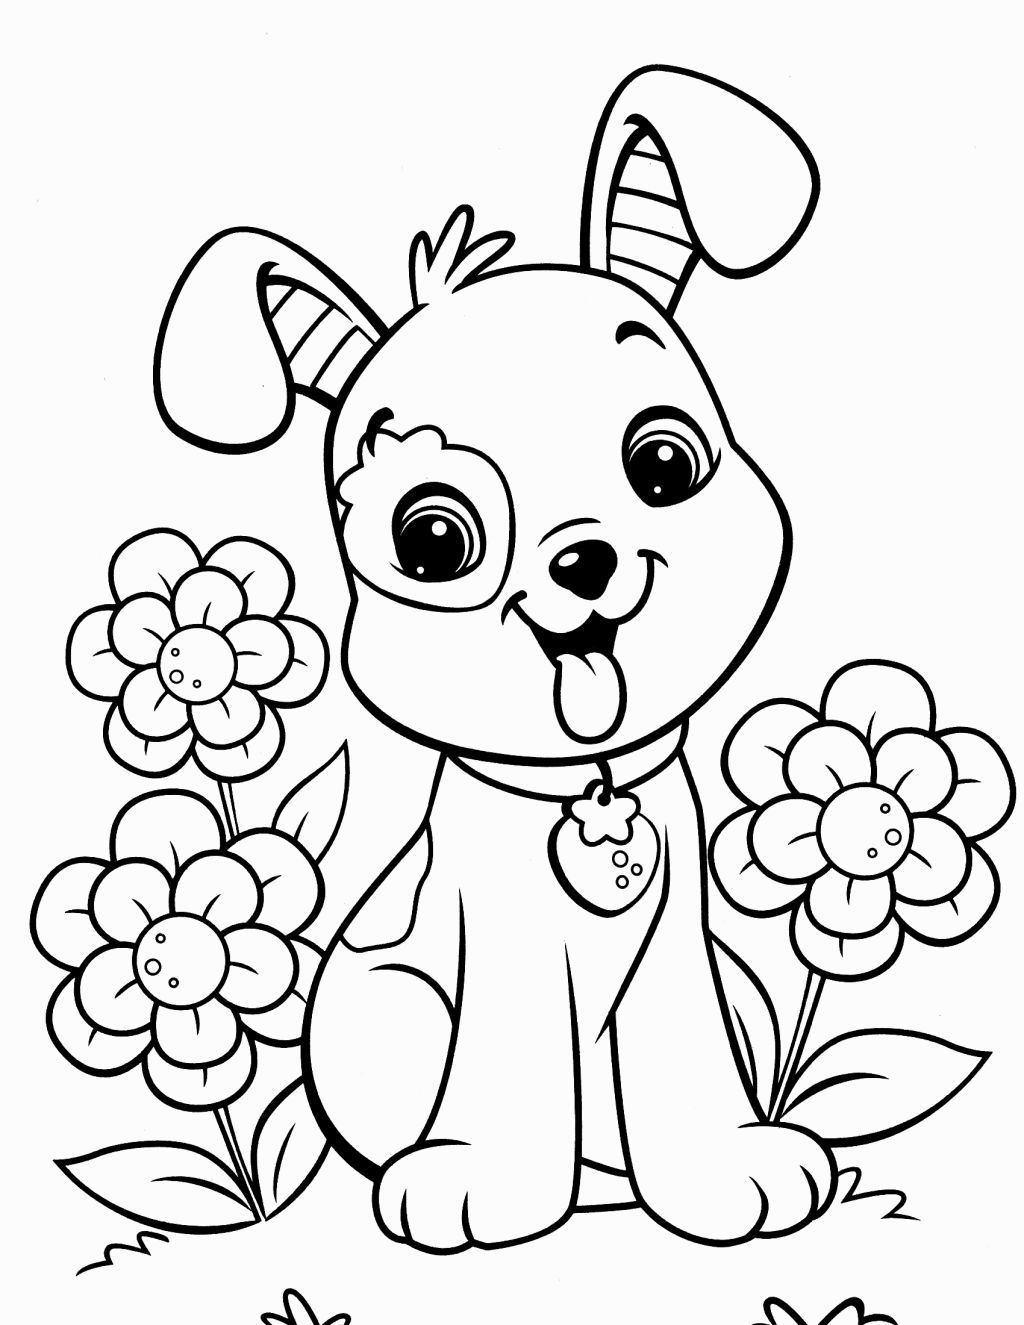 Dog Coloring Pages For Kids Puppy Coloring Pages Dog Coloring Page Cute Coloring Pages